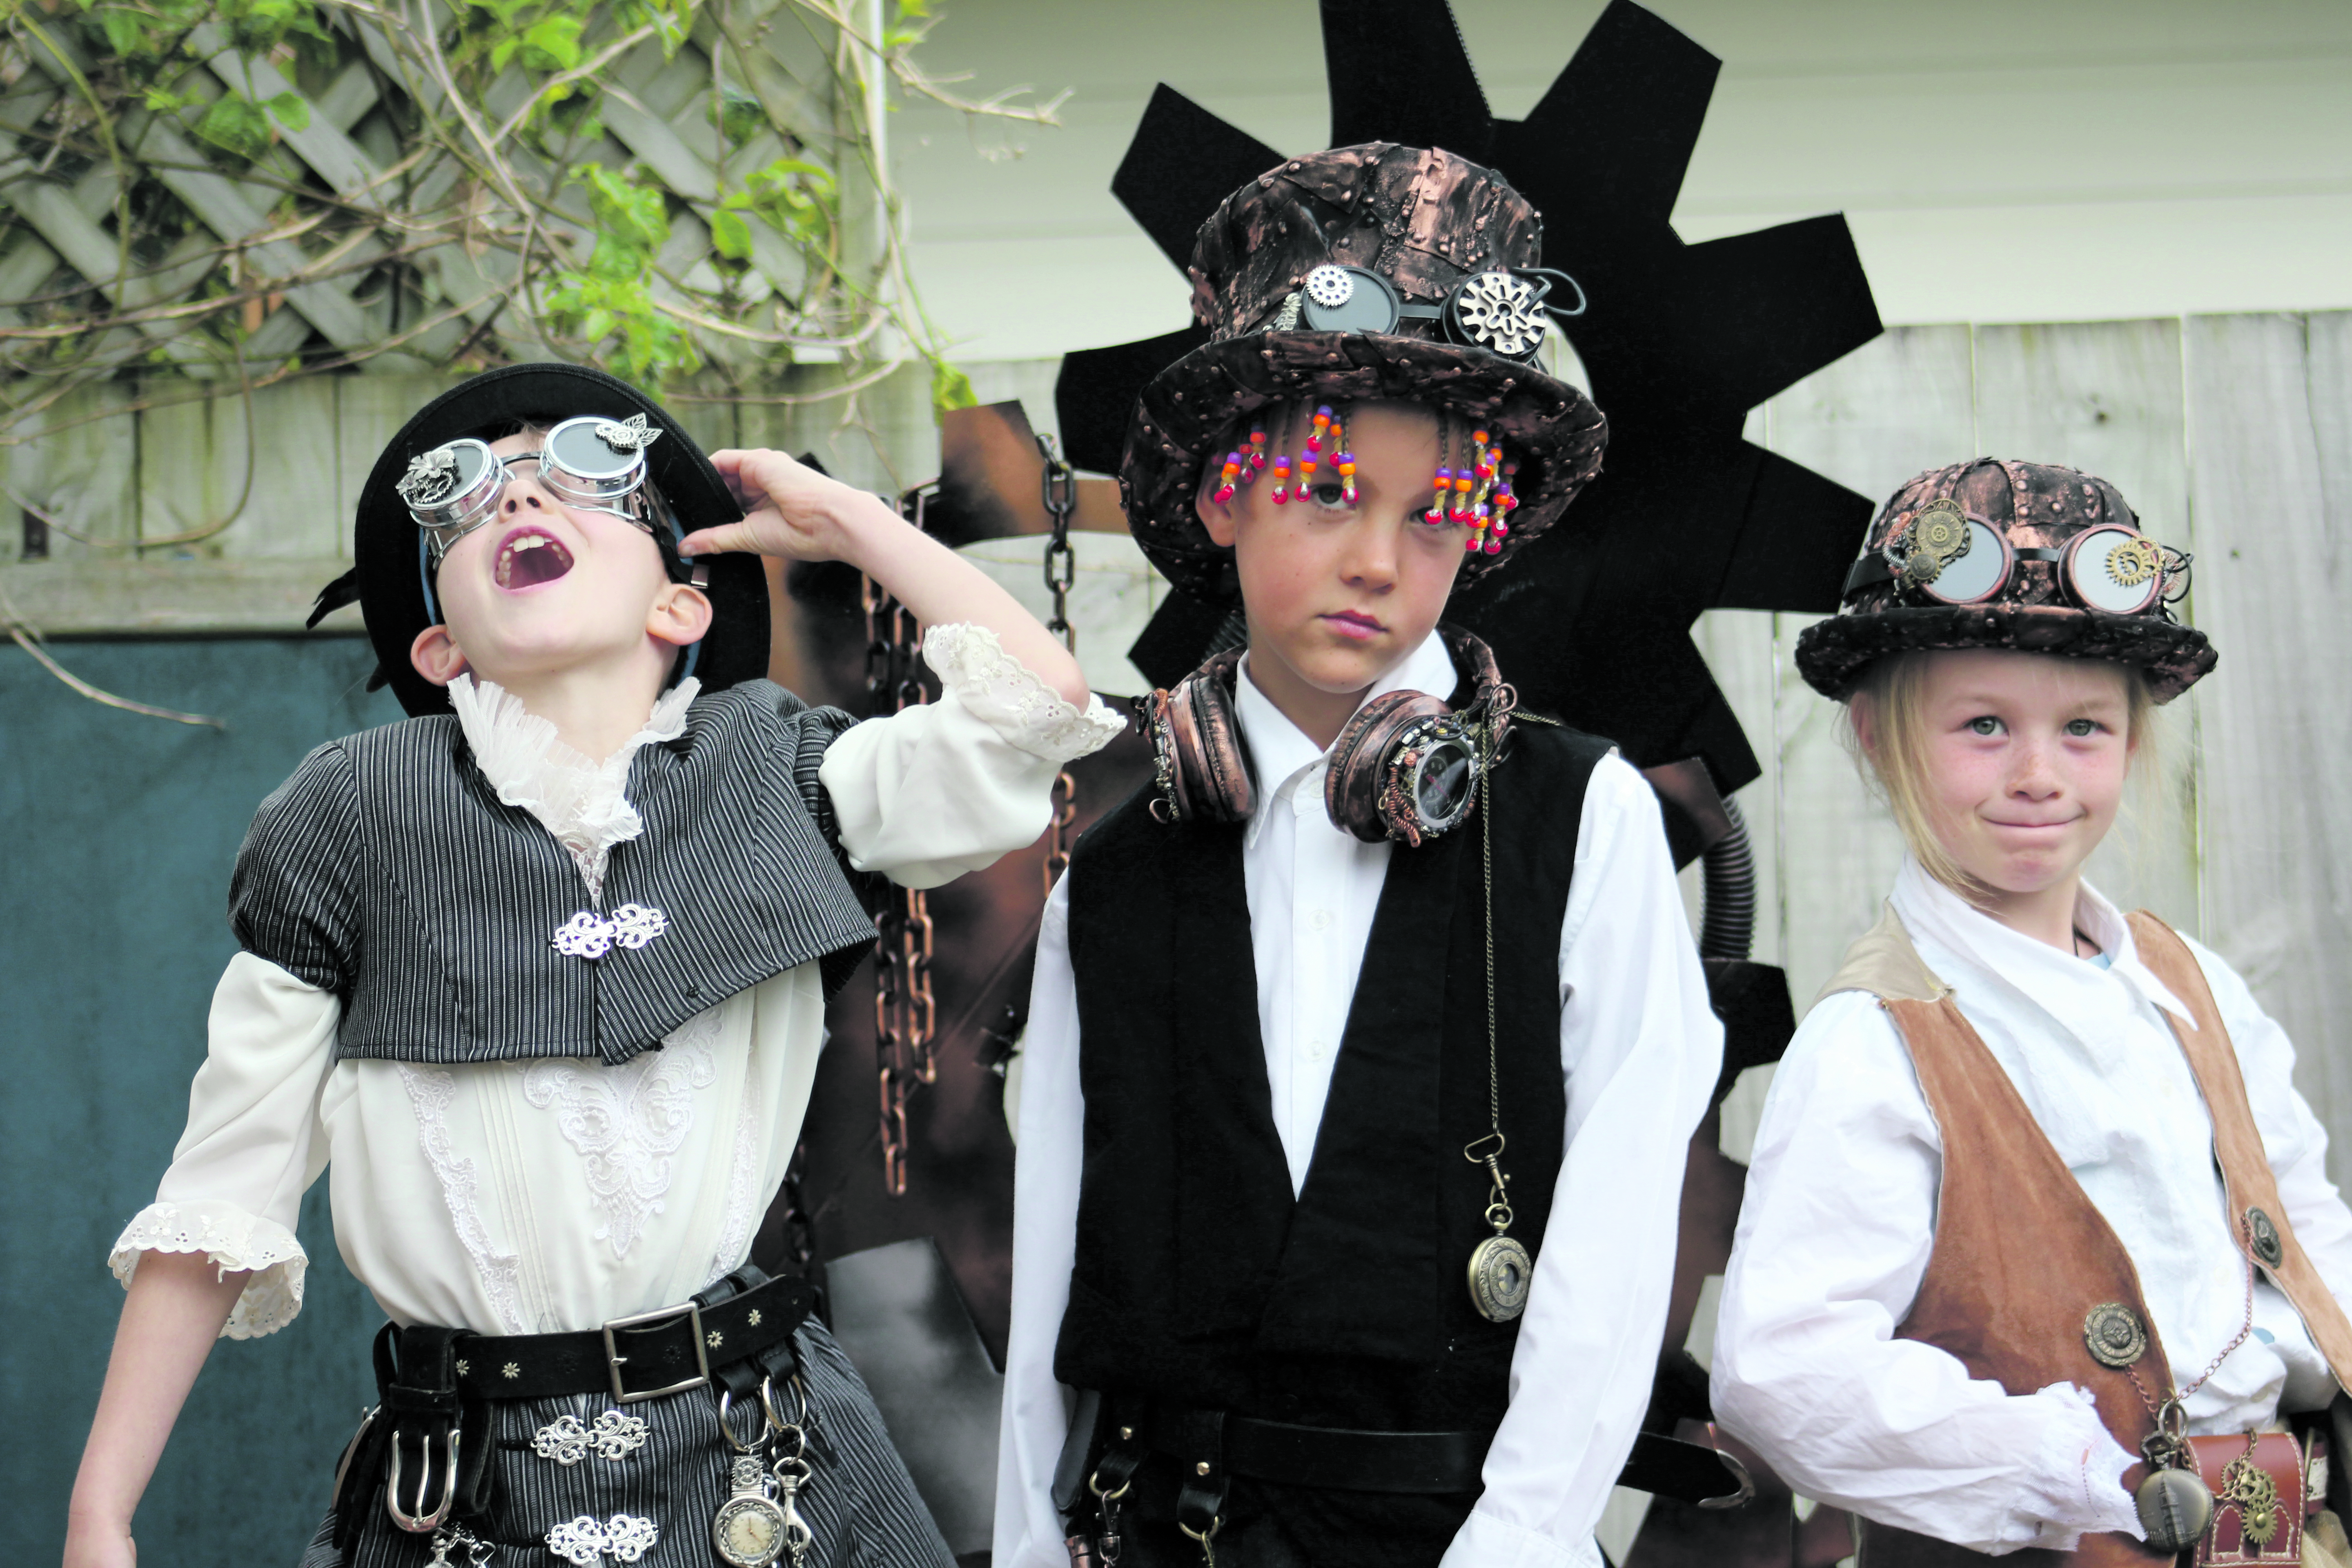 From left Nia Hosking, 7, Ed Woolston, 8 and Amarda Rolton                                           are getting steampunked.